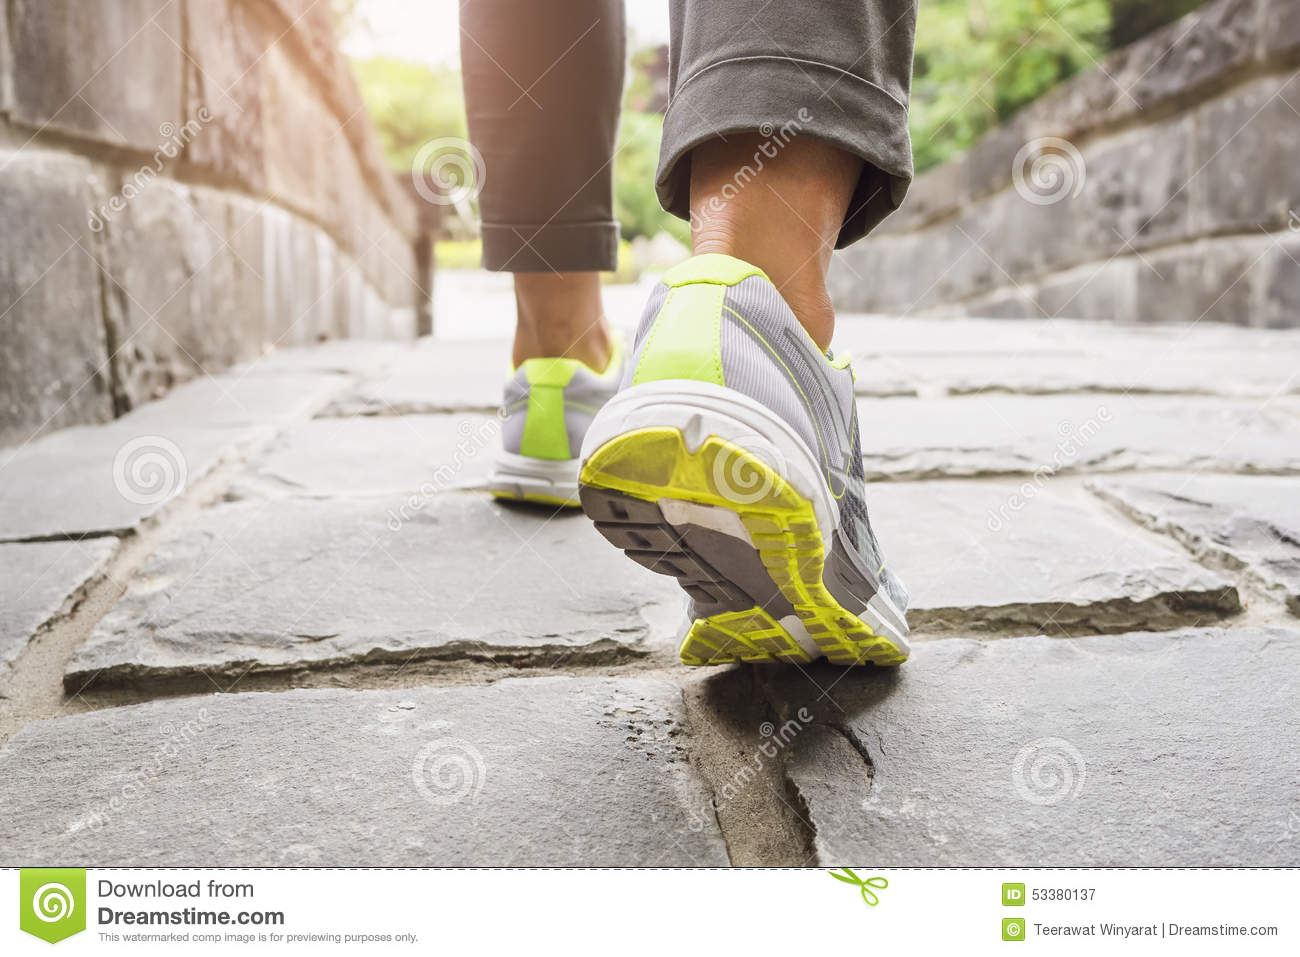 Woman Walking on trail outdoor exercise